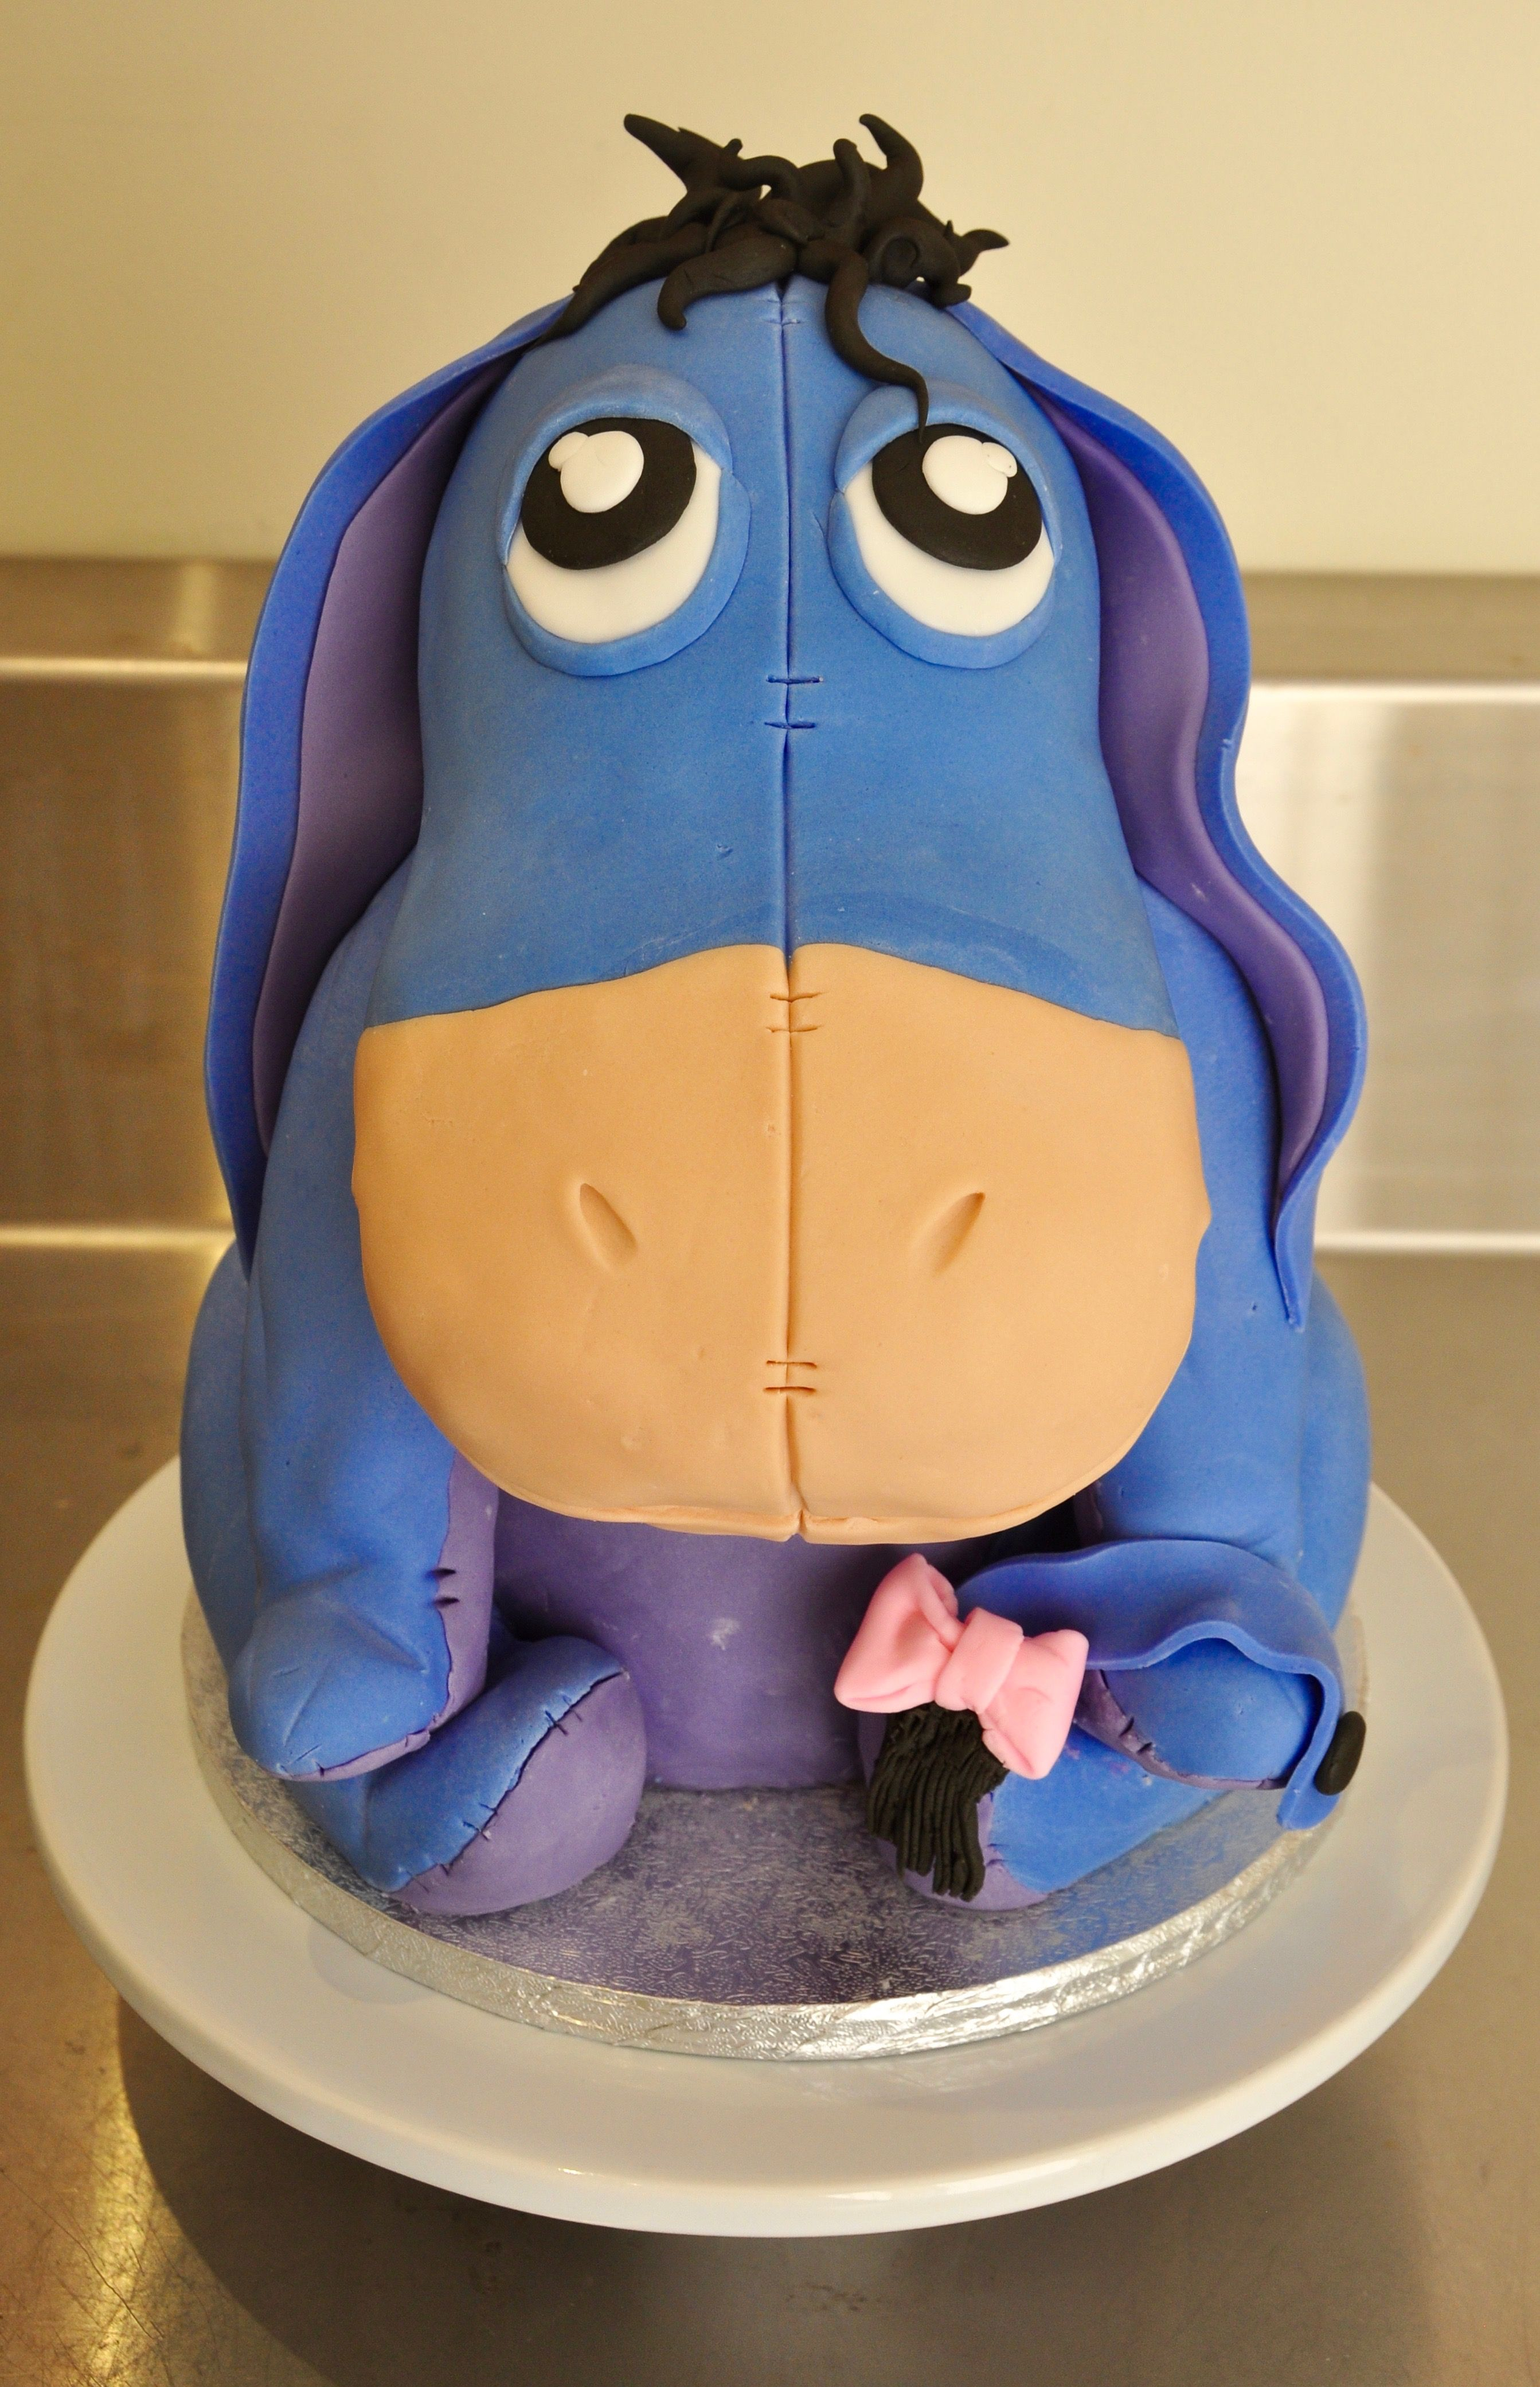 Magnificent Eeyore Birthday Cake Head Is Styrofoam Body Arms And Legs Are Funny Birthday Cards Online Inifofree Goldxyz